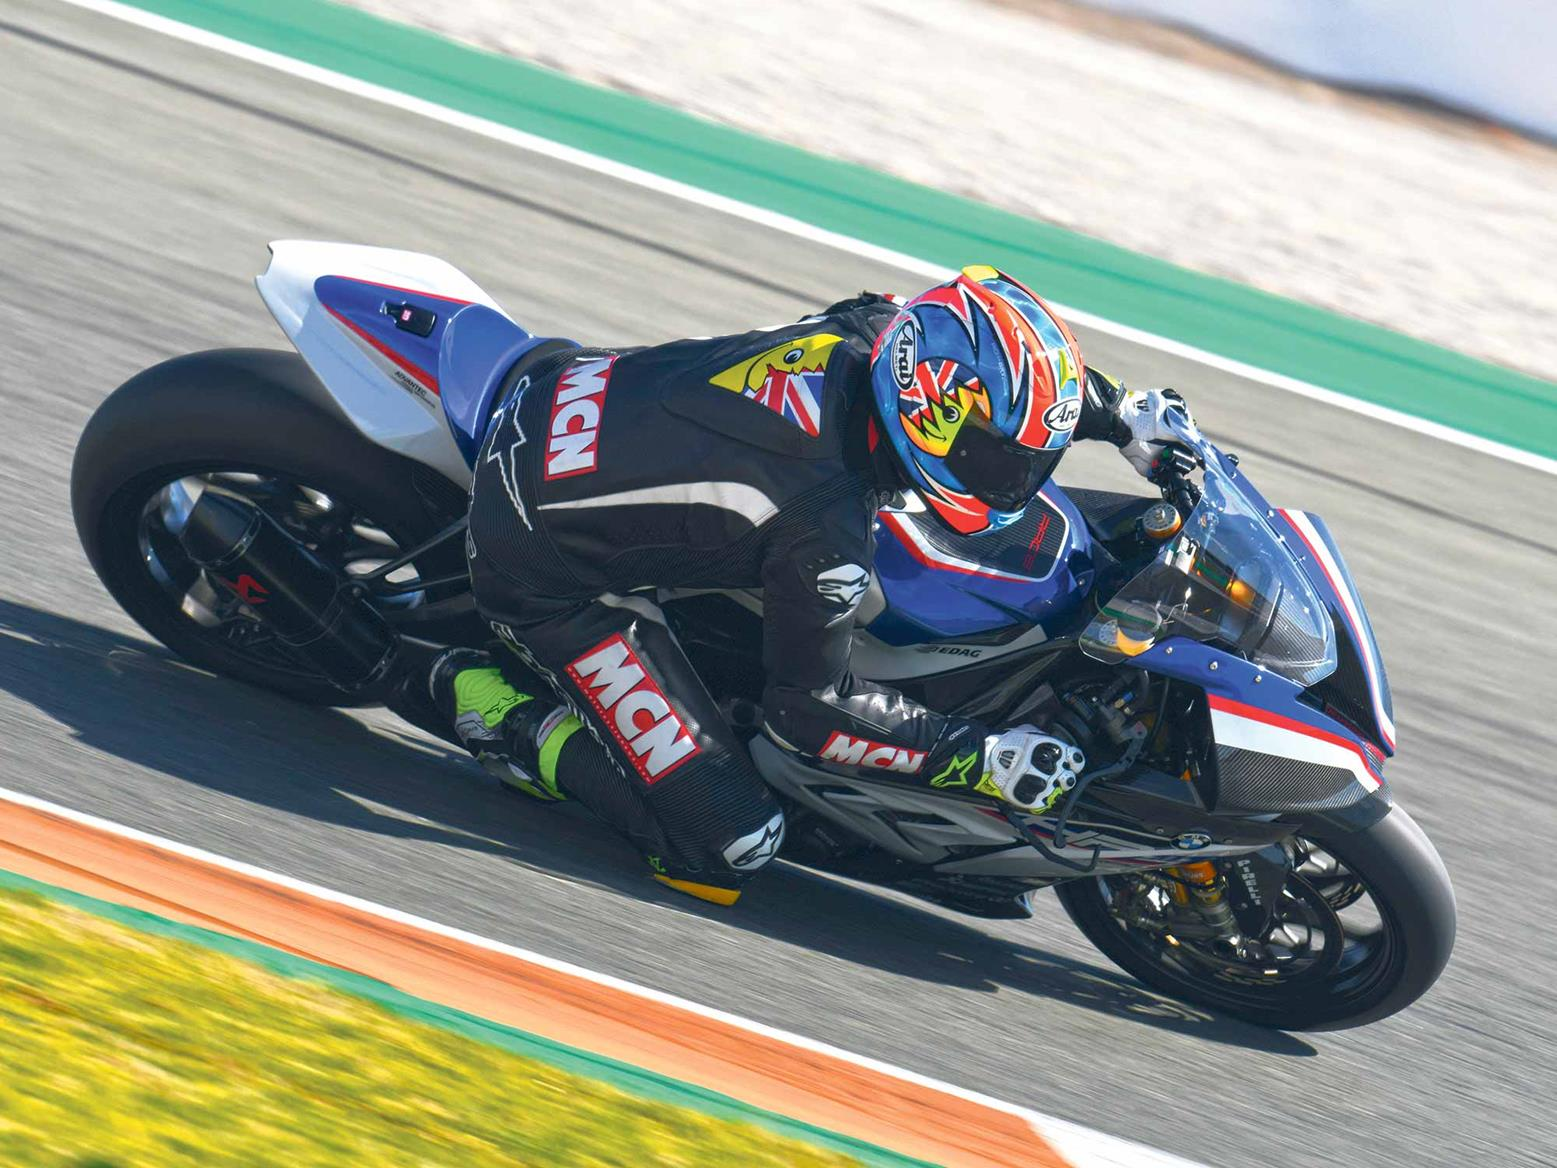 Riding the BMW HP4 Race